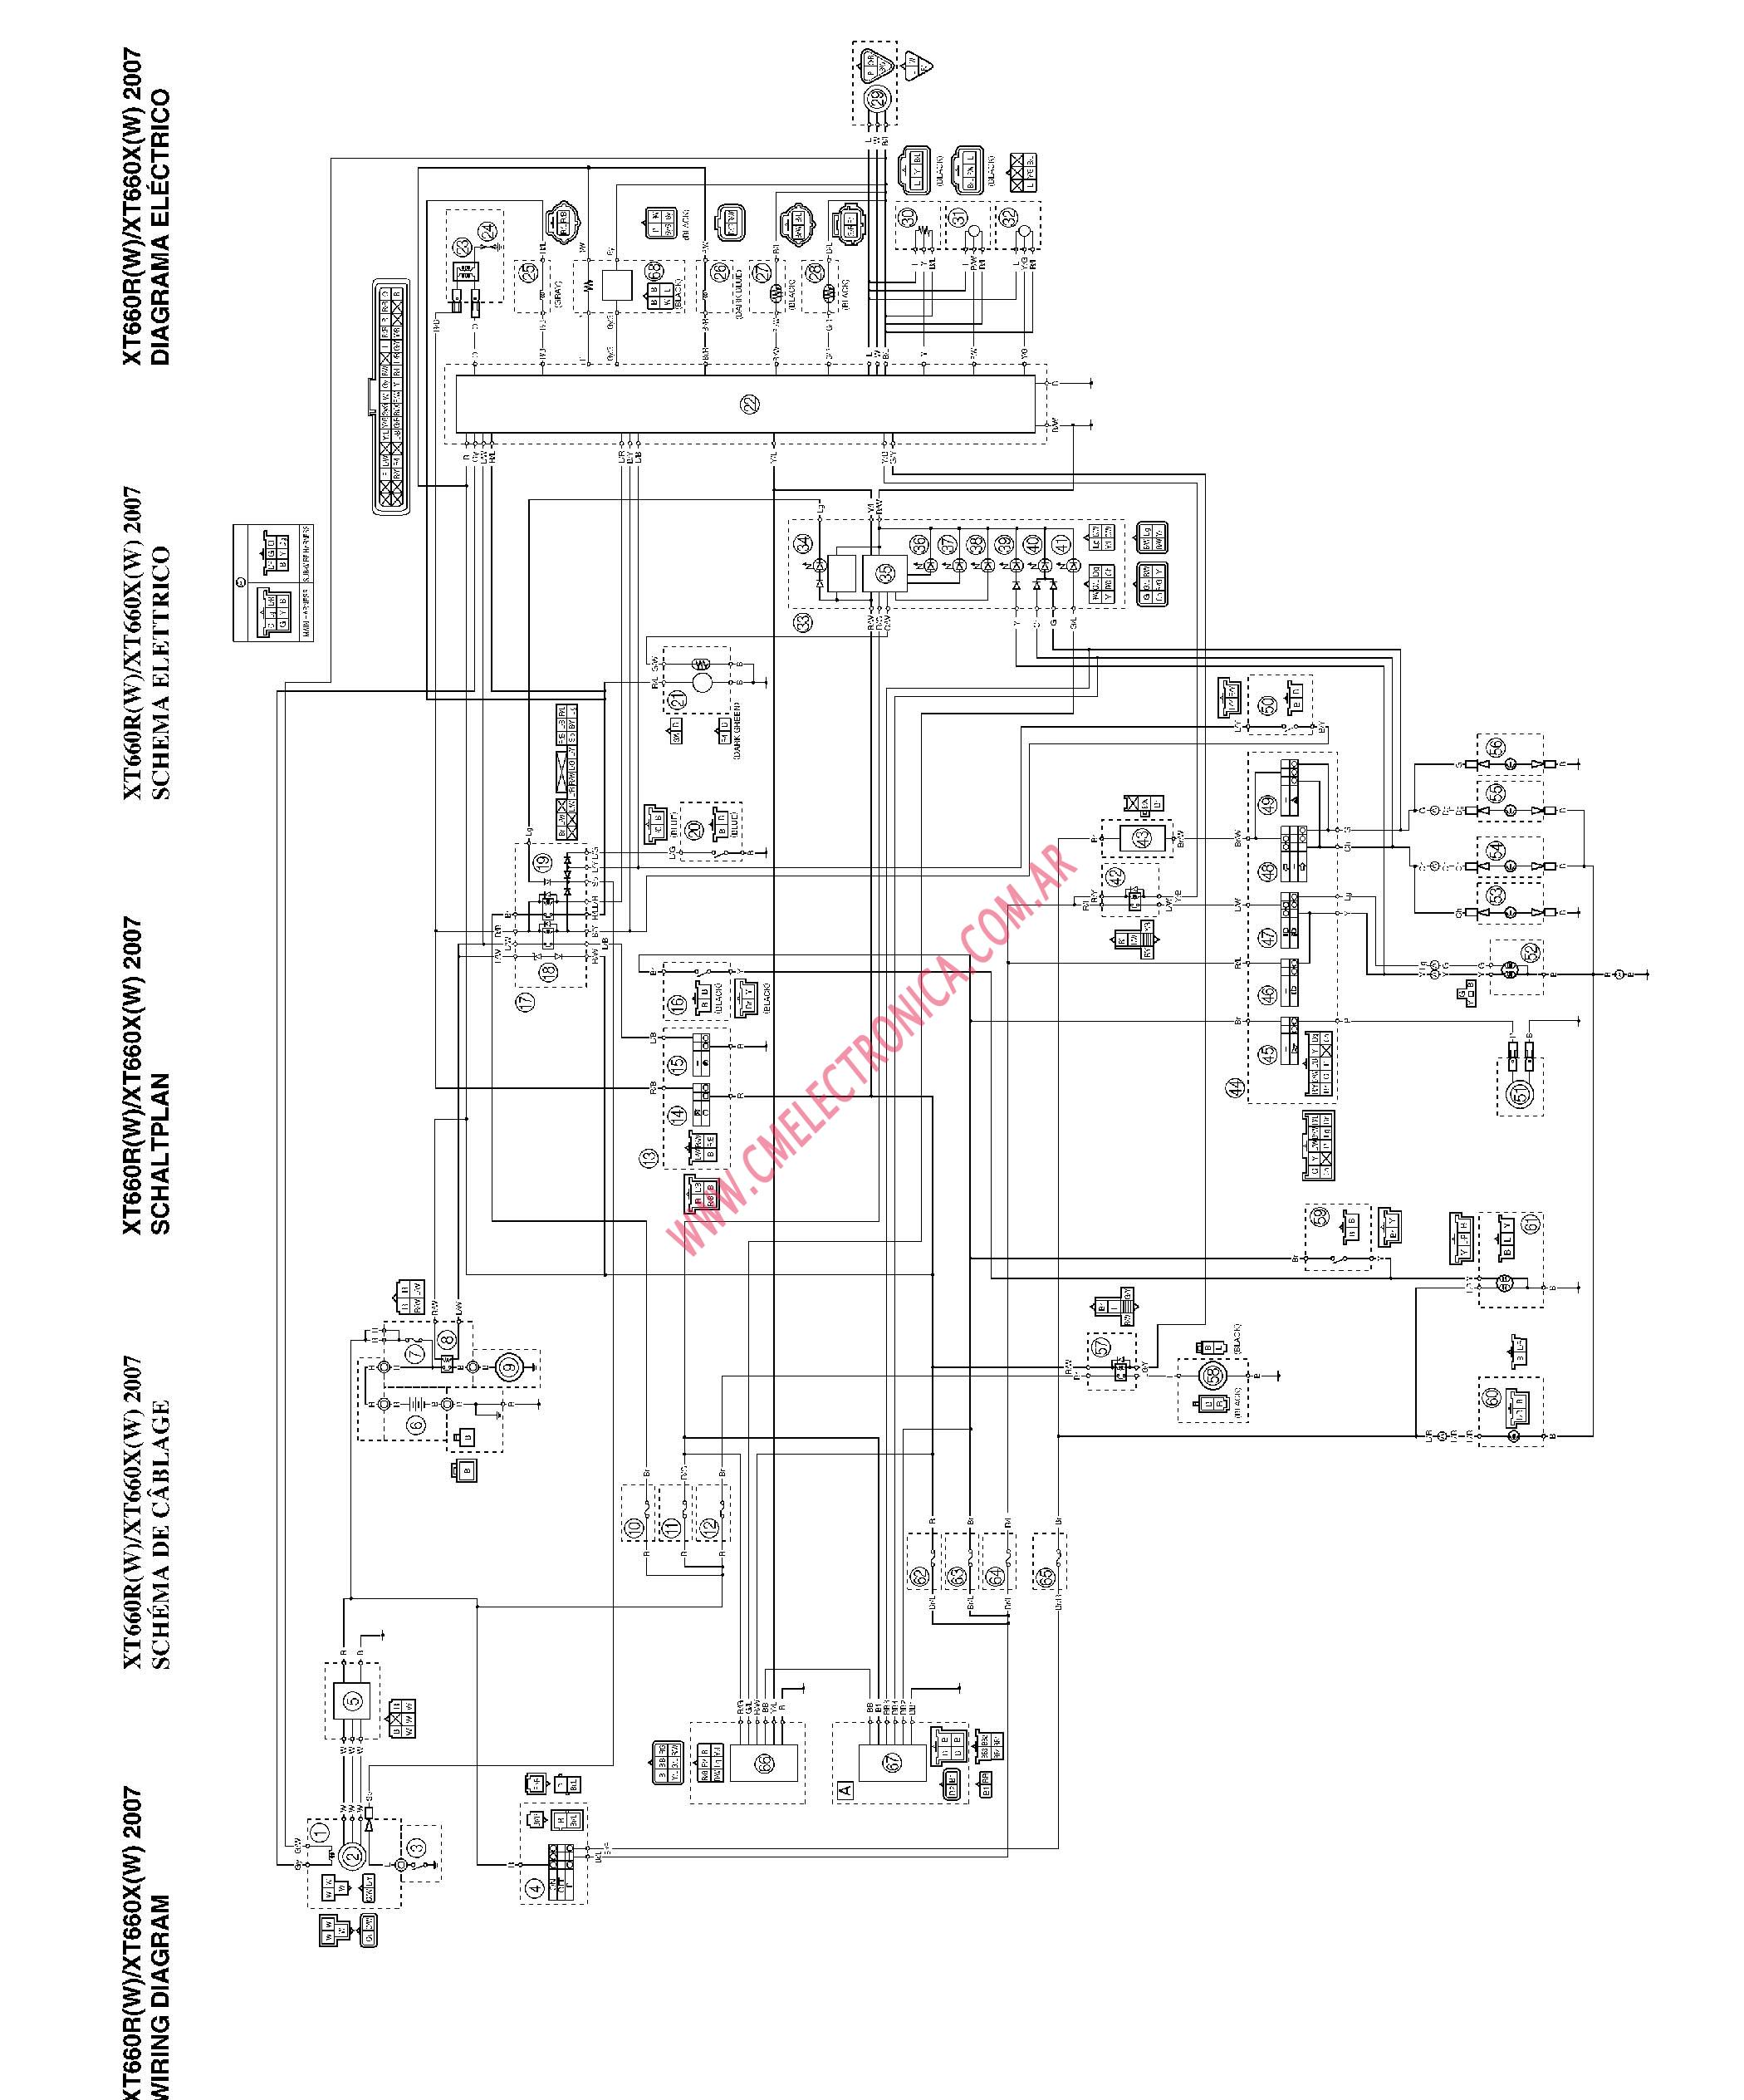 Yamaha 660 Grizzly Cdi Wiring Diagram Diagrams Rhino 700 2003 Raptor Auto 600 Carburetor